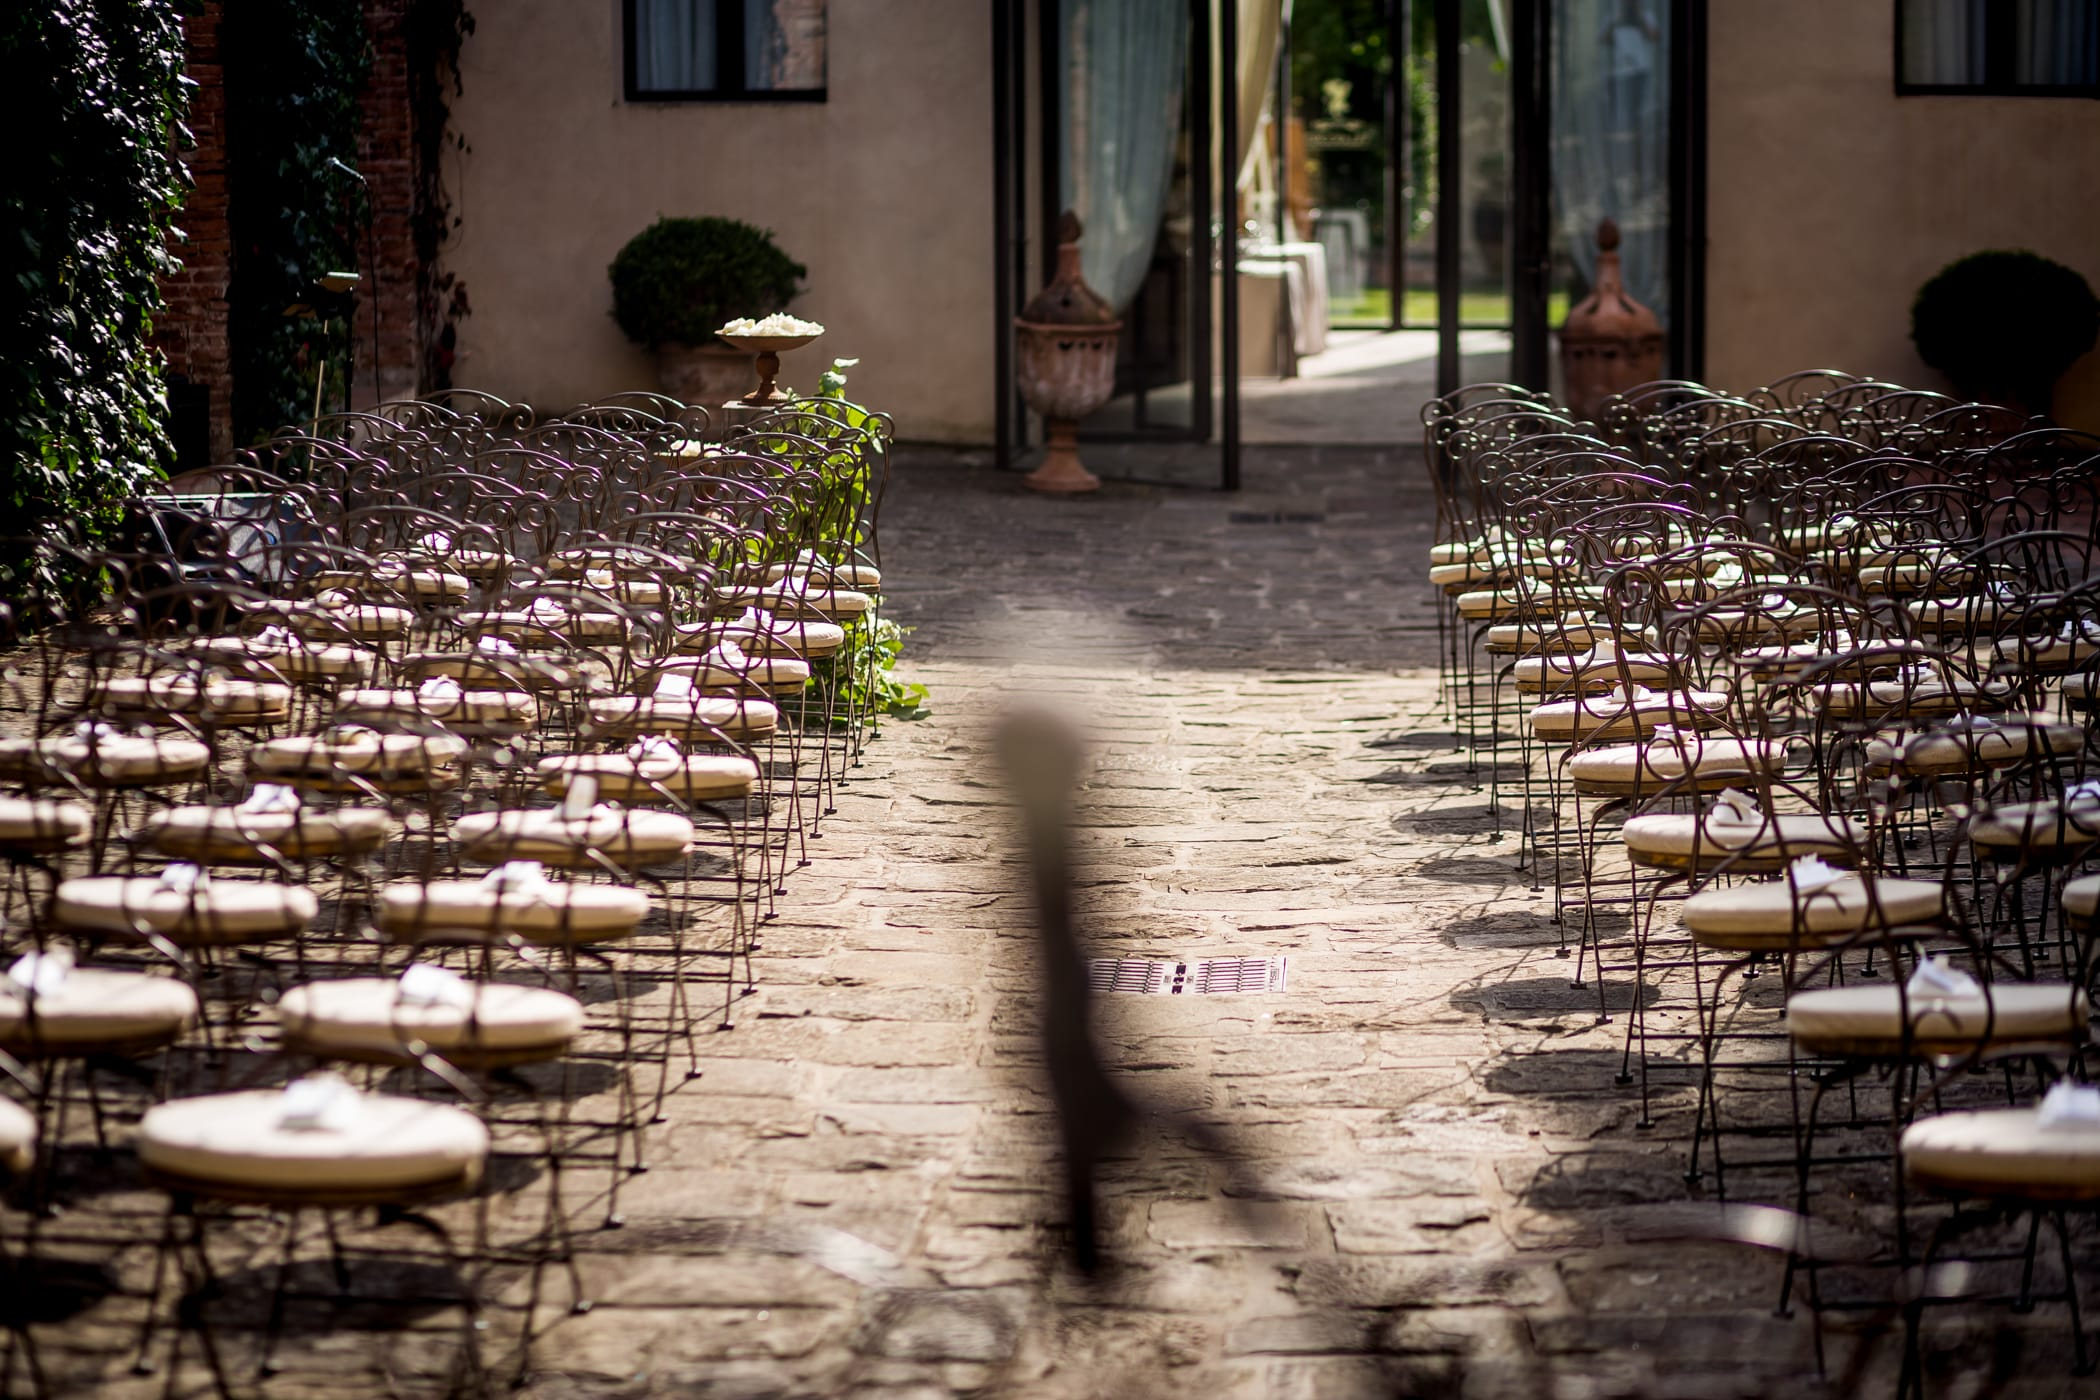 Wedding in villages and historic villas in Pisa, Tuscany. Giulia Alessandri Wedding Planner, Wedding Design & Wedding Coordination in Tuscany.